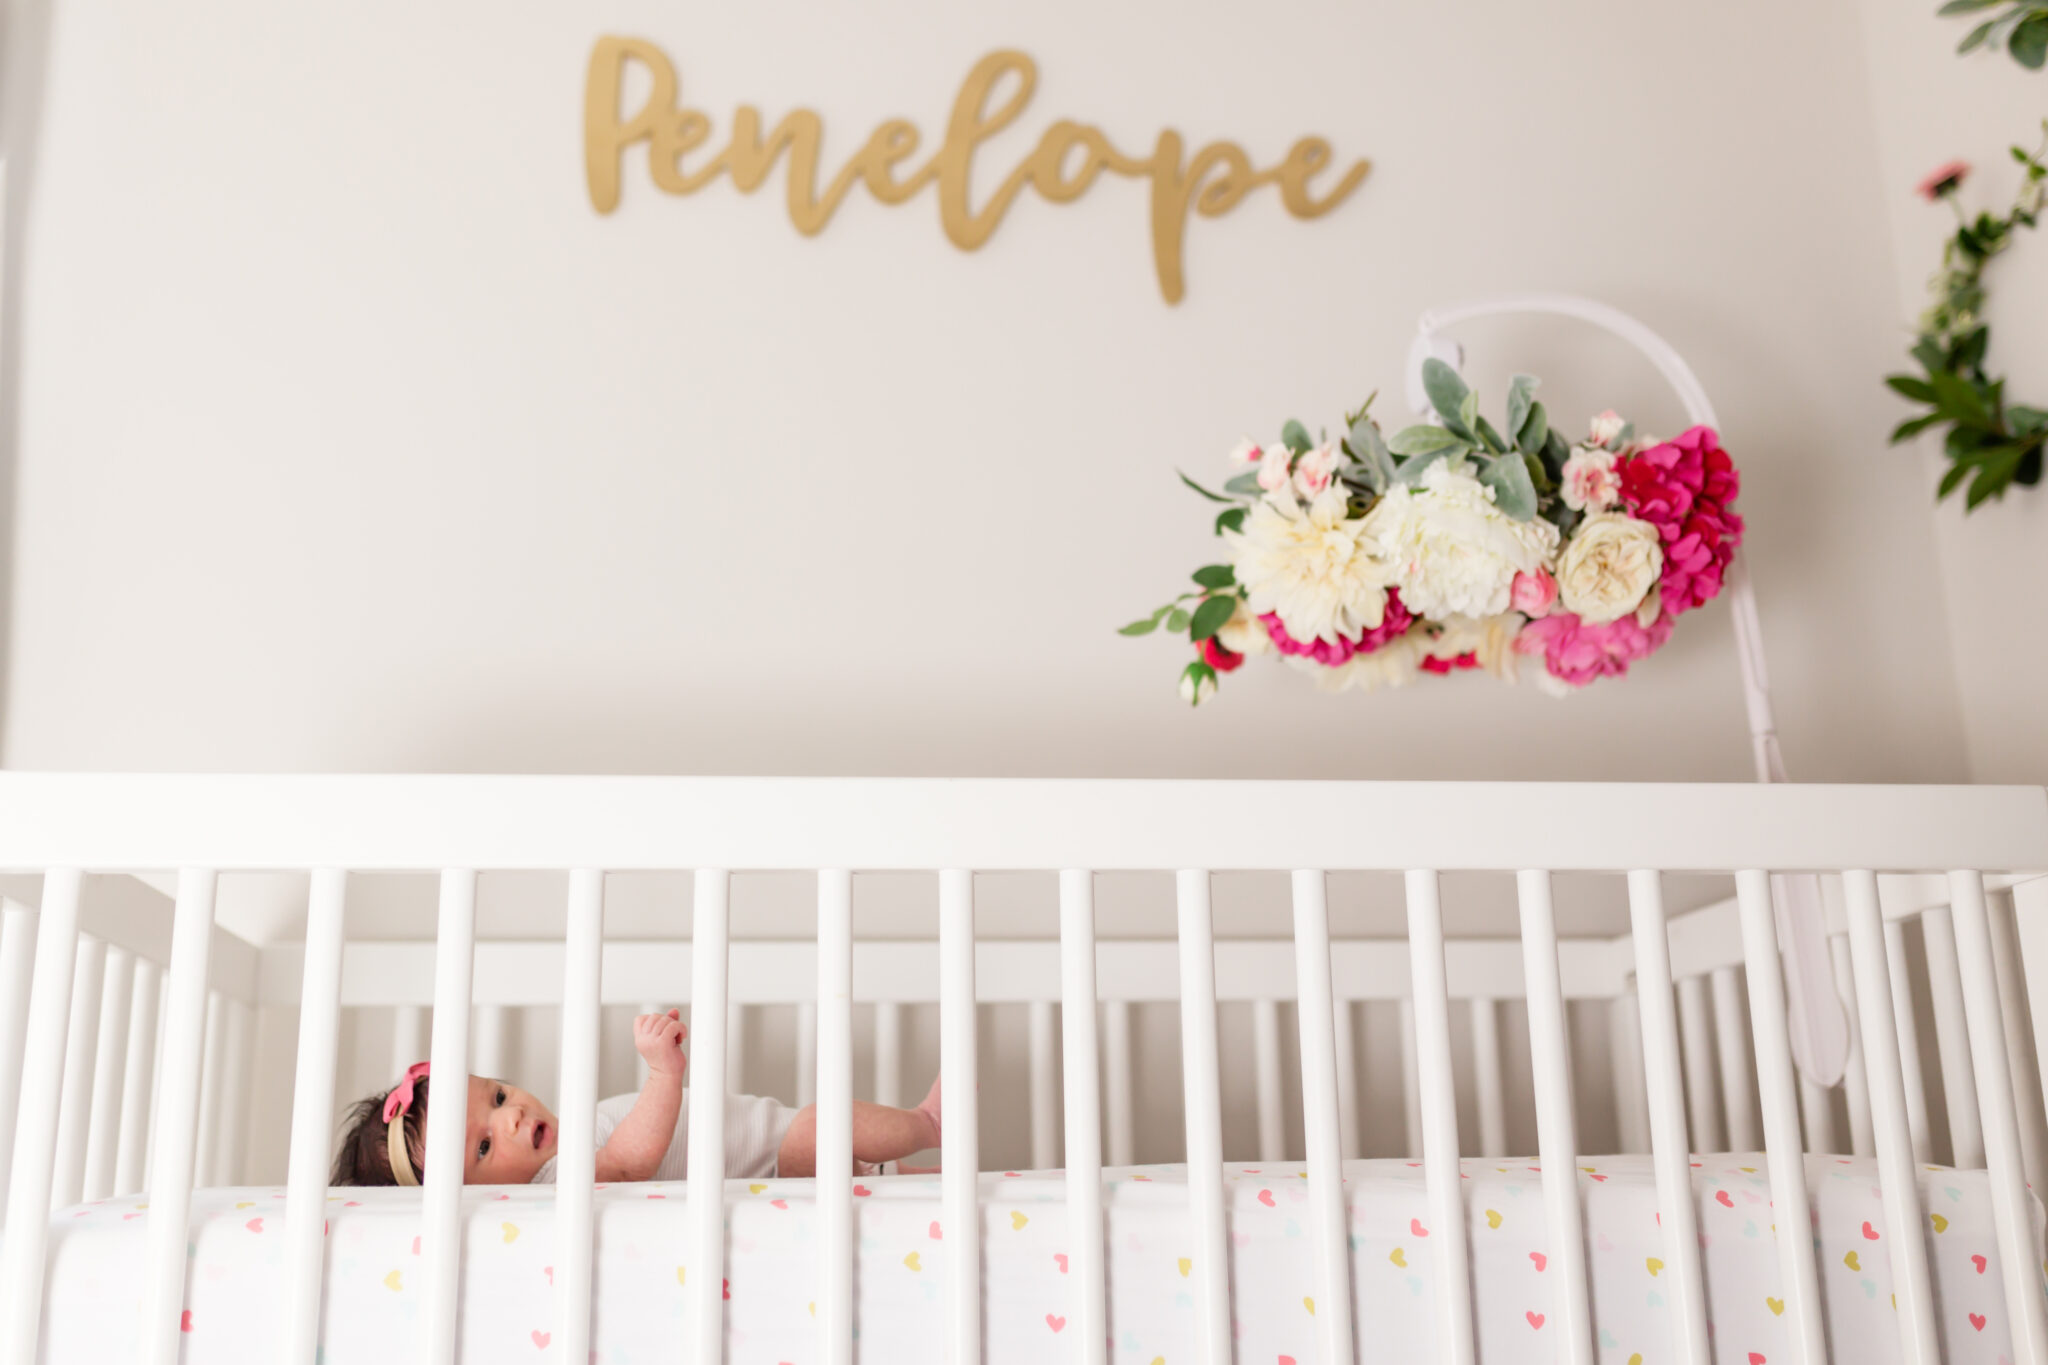 Penelope name out of wood in nursery with floral mobile